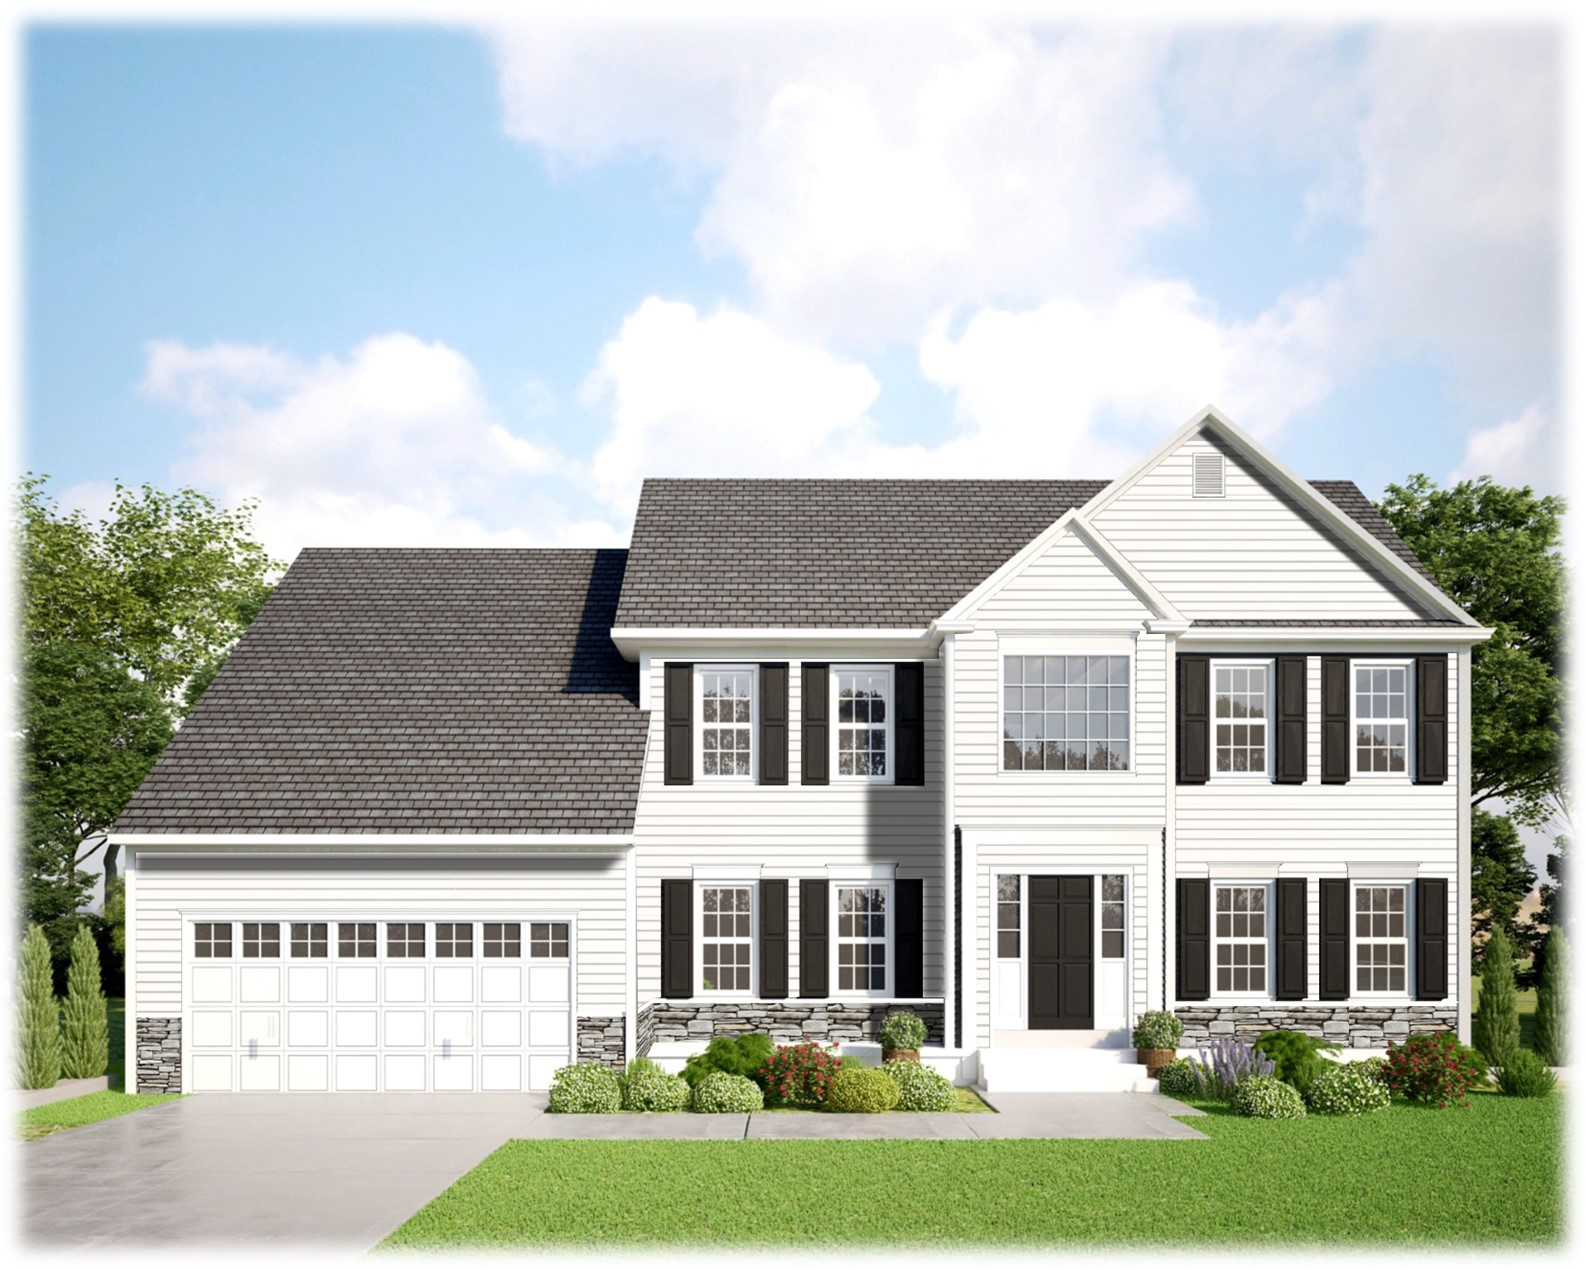 Dark Gray Two Story Home with Black Shutters and a two car garage